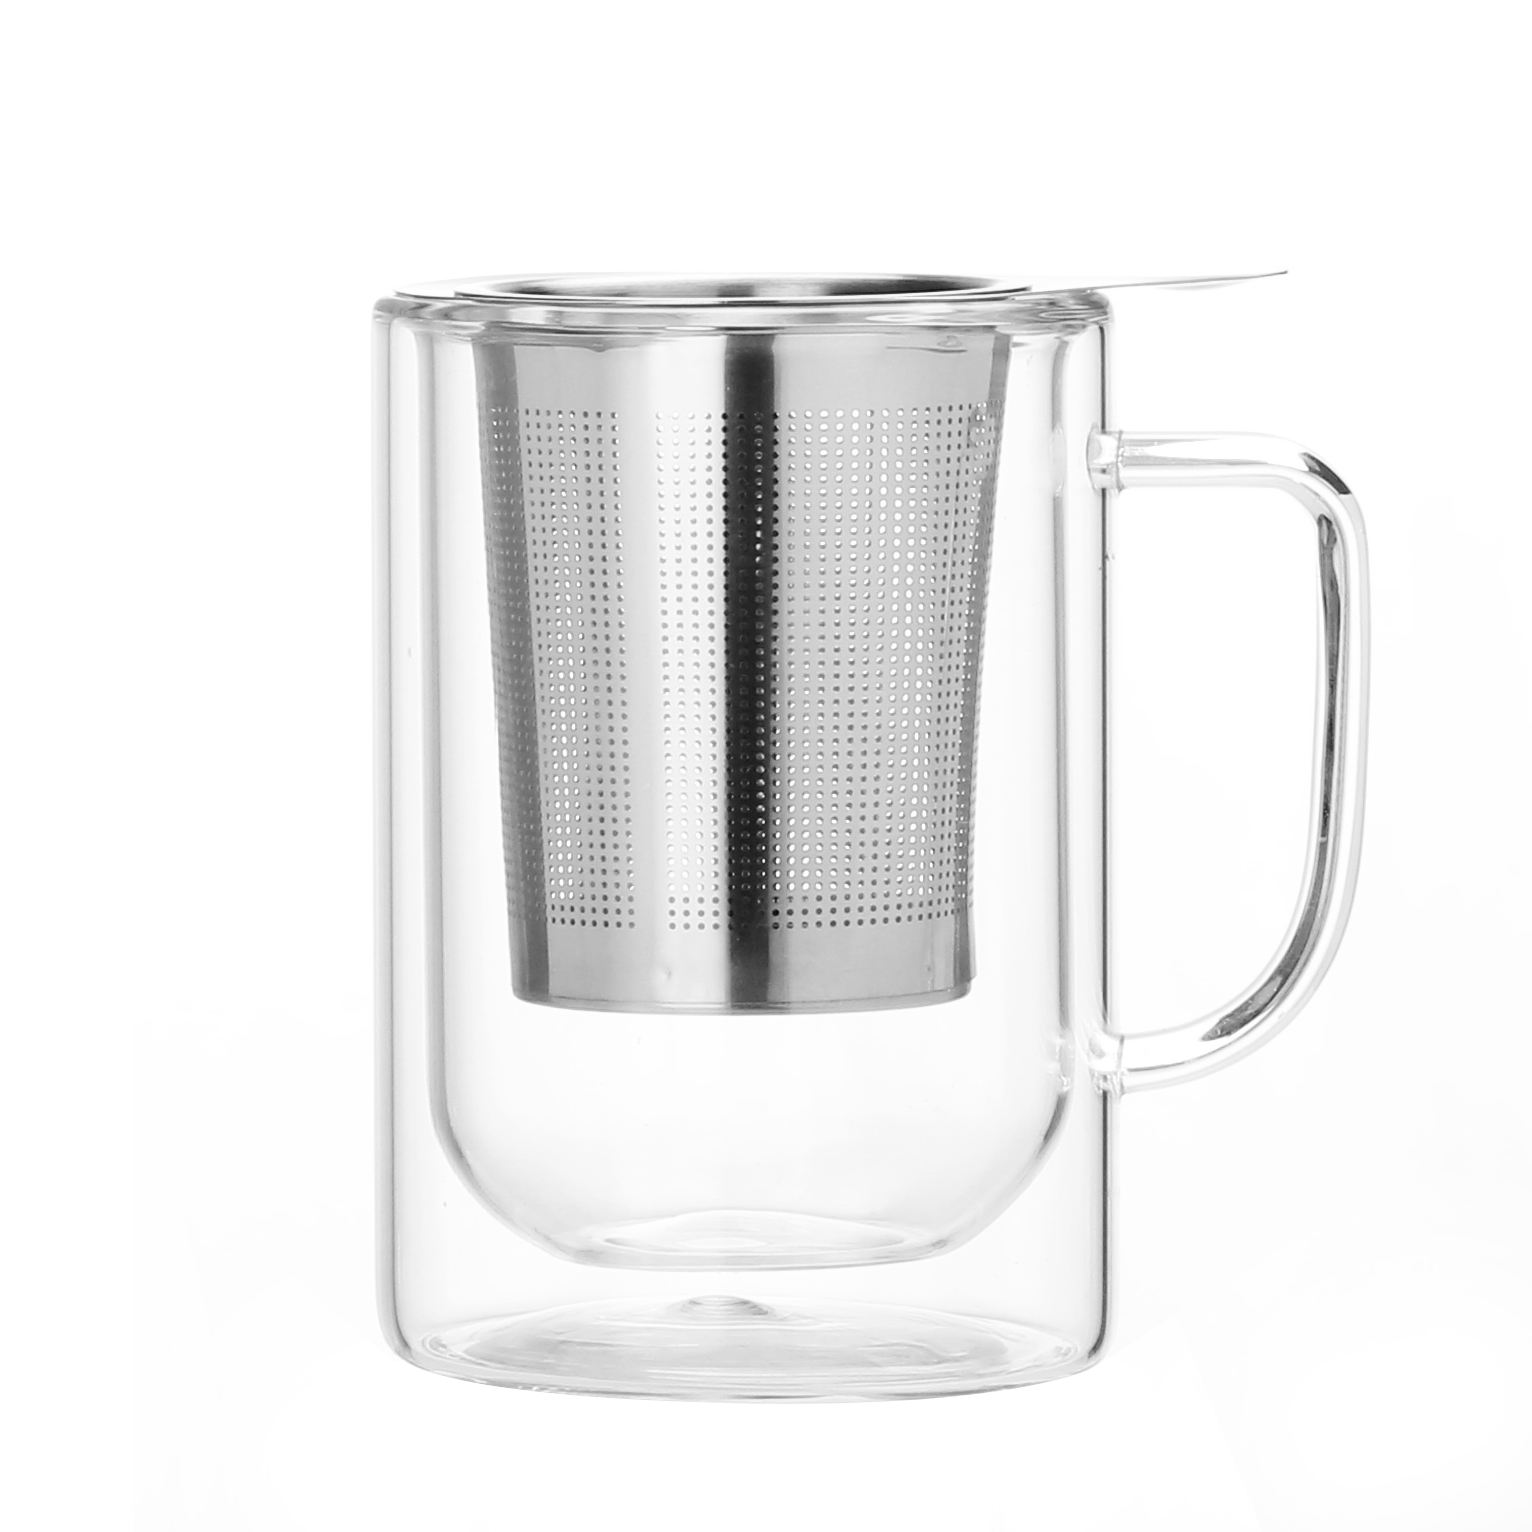 Double Wall Glass Food Grade Glass Cup Personalized Glass Cups Tea Cup with Infuser